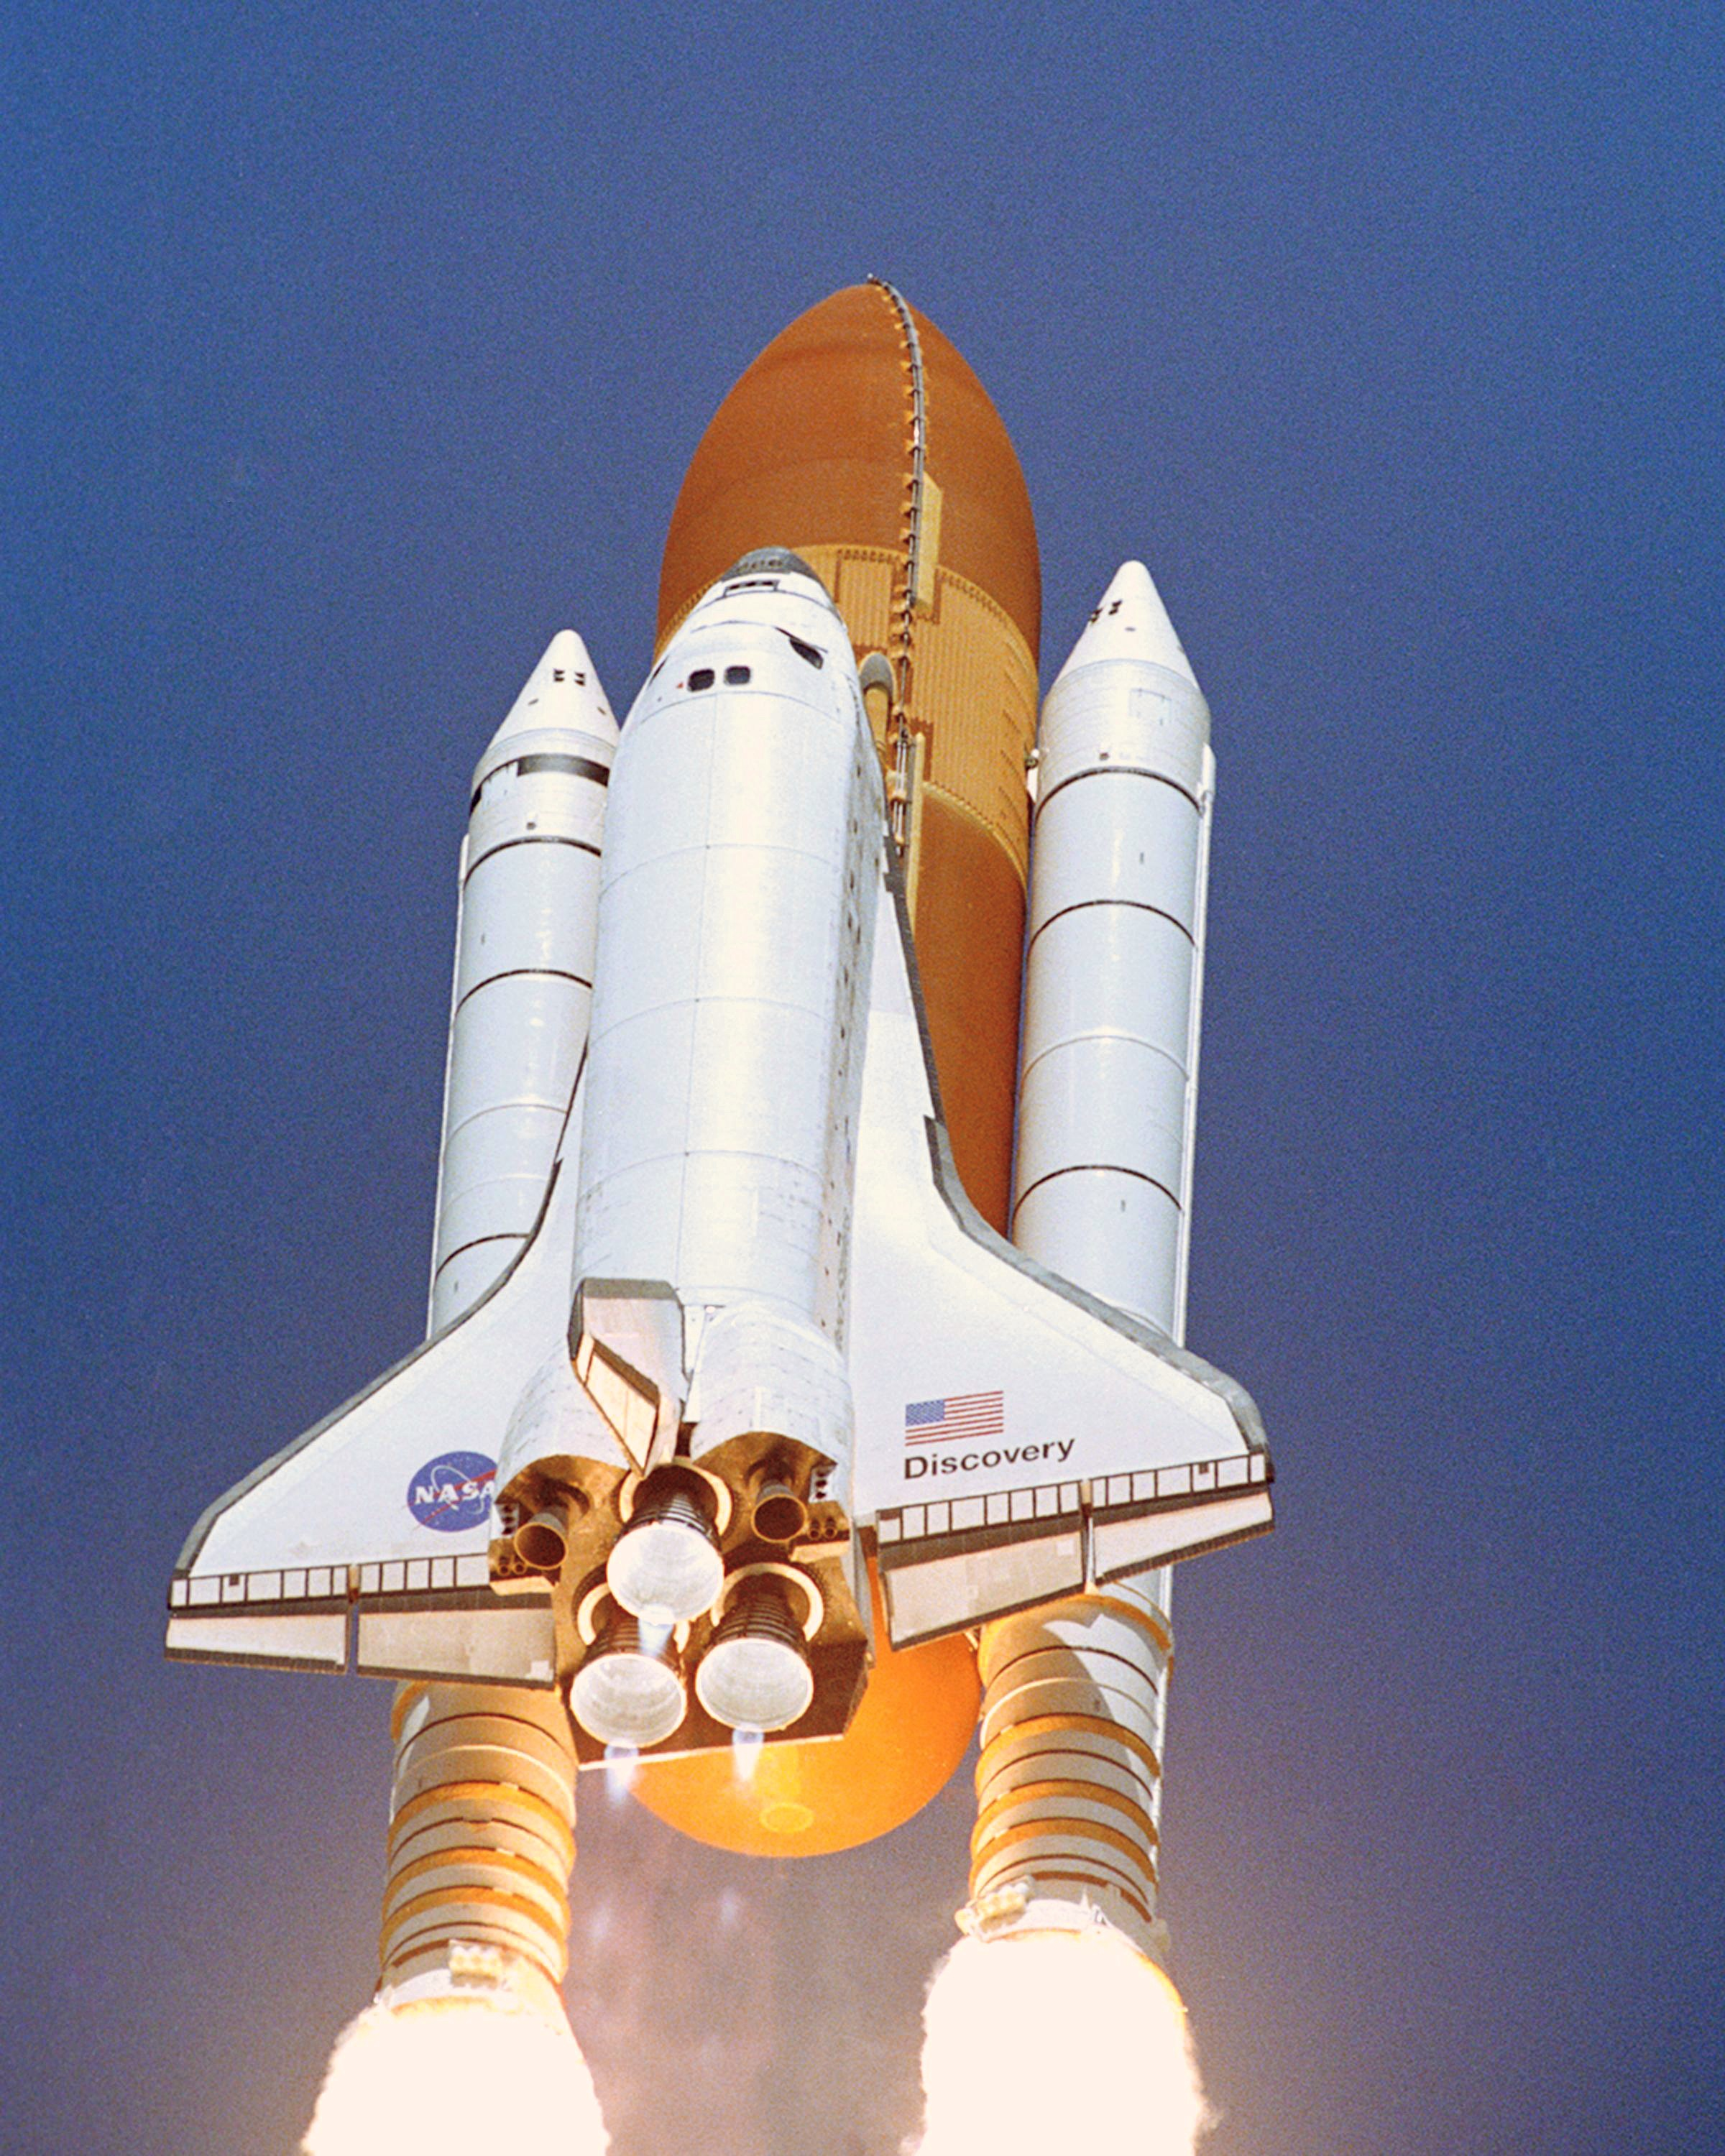 text space shuttle discovery missions - photo #29